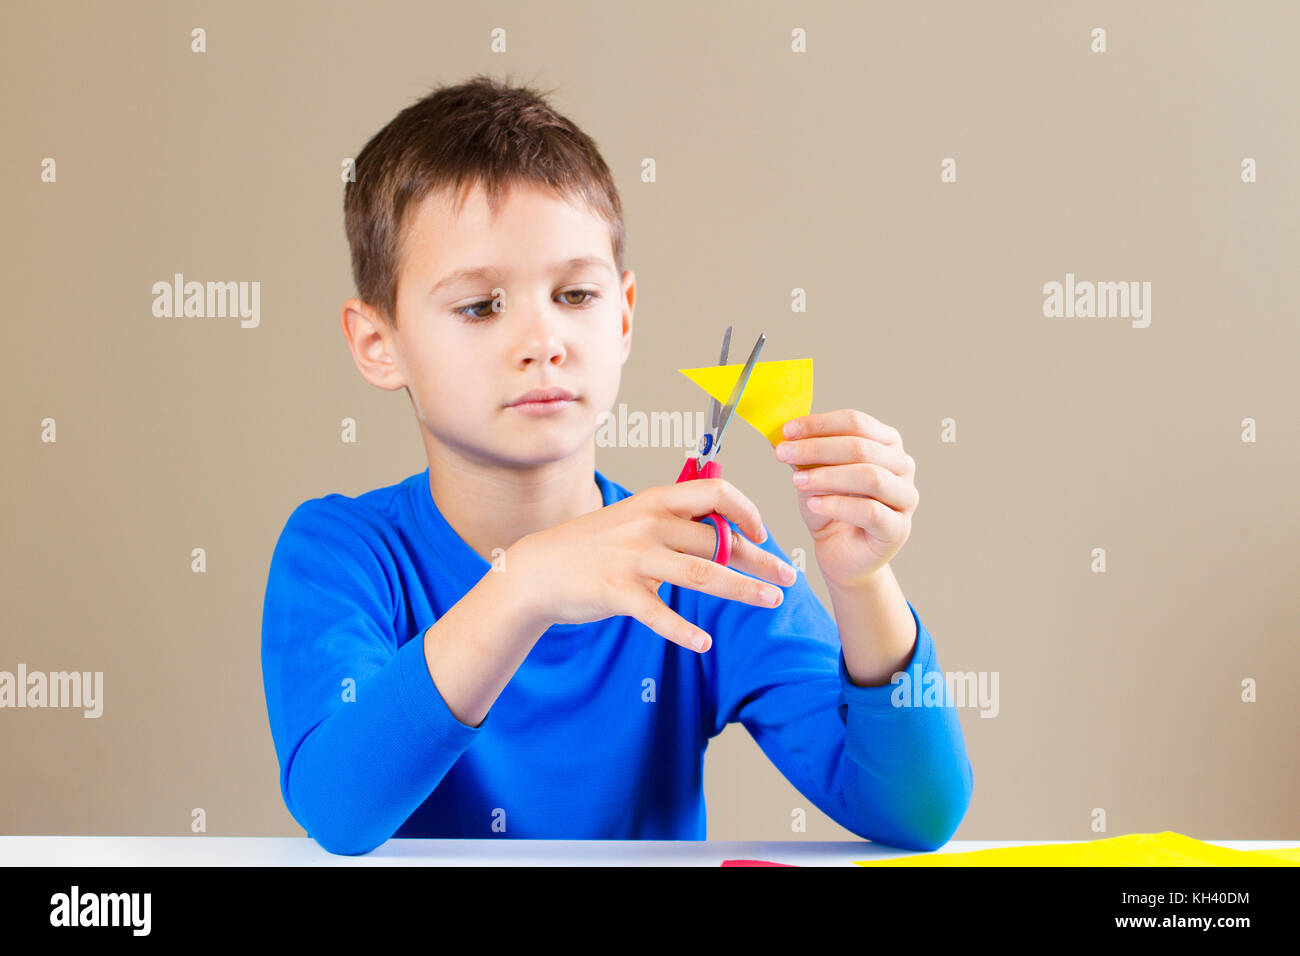 Boy cutting colored paper with scissors - Stock Image